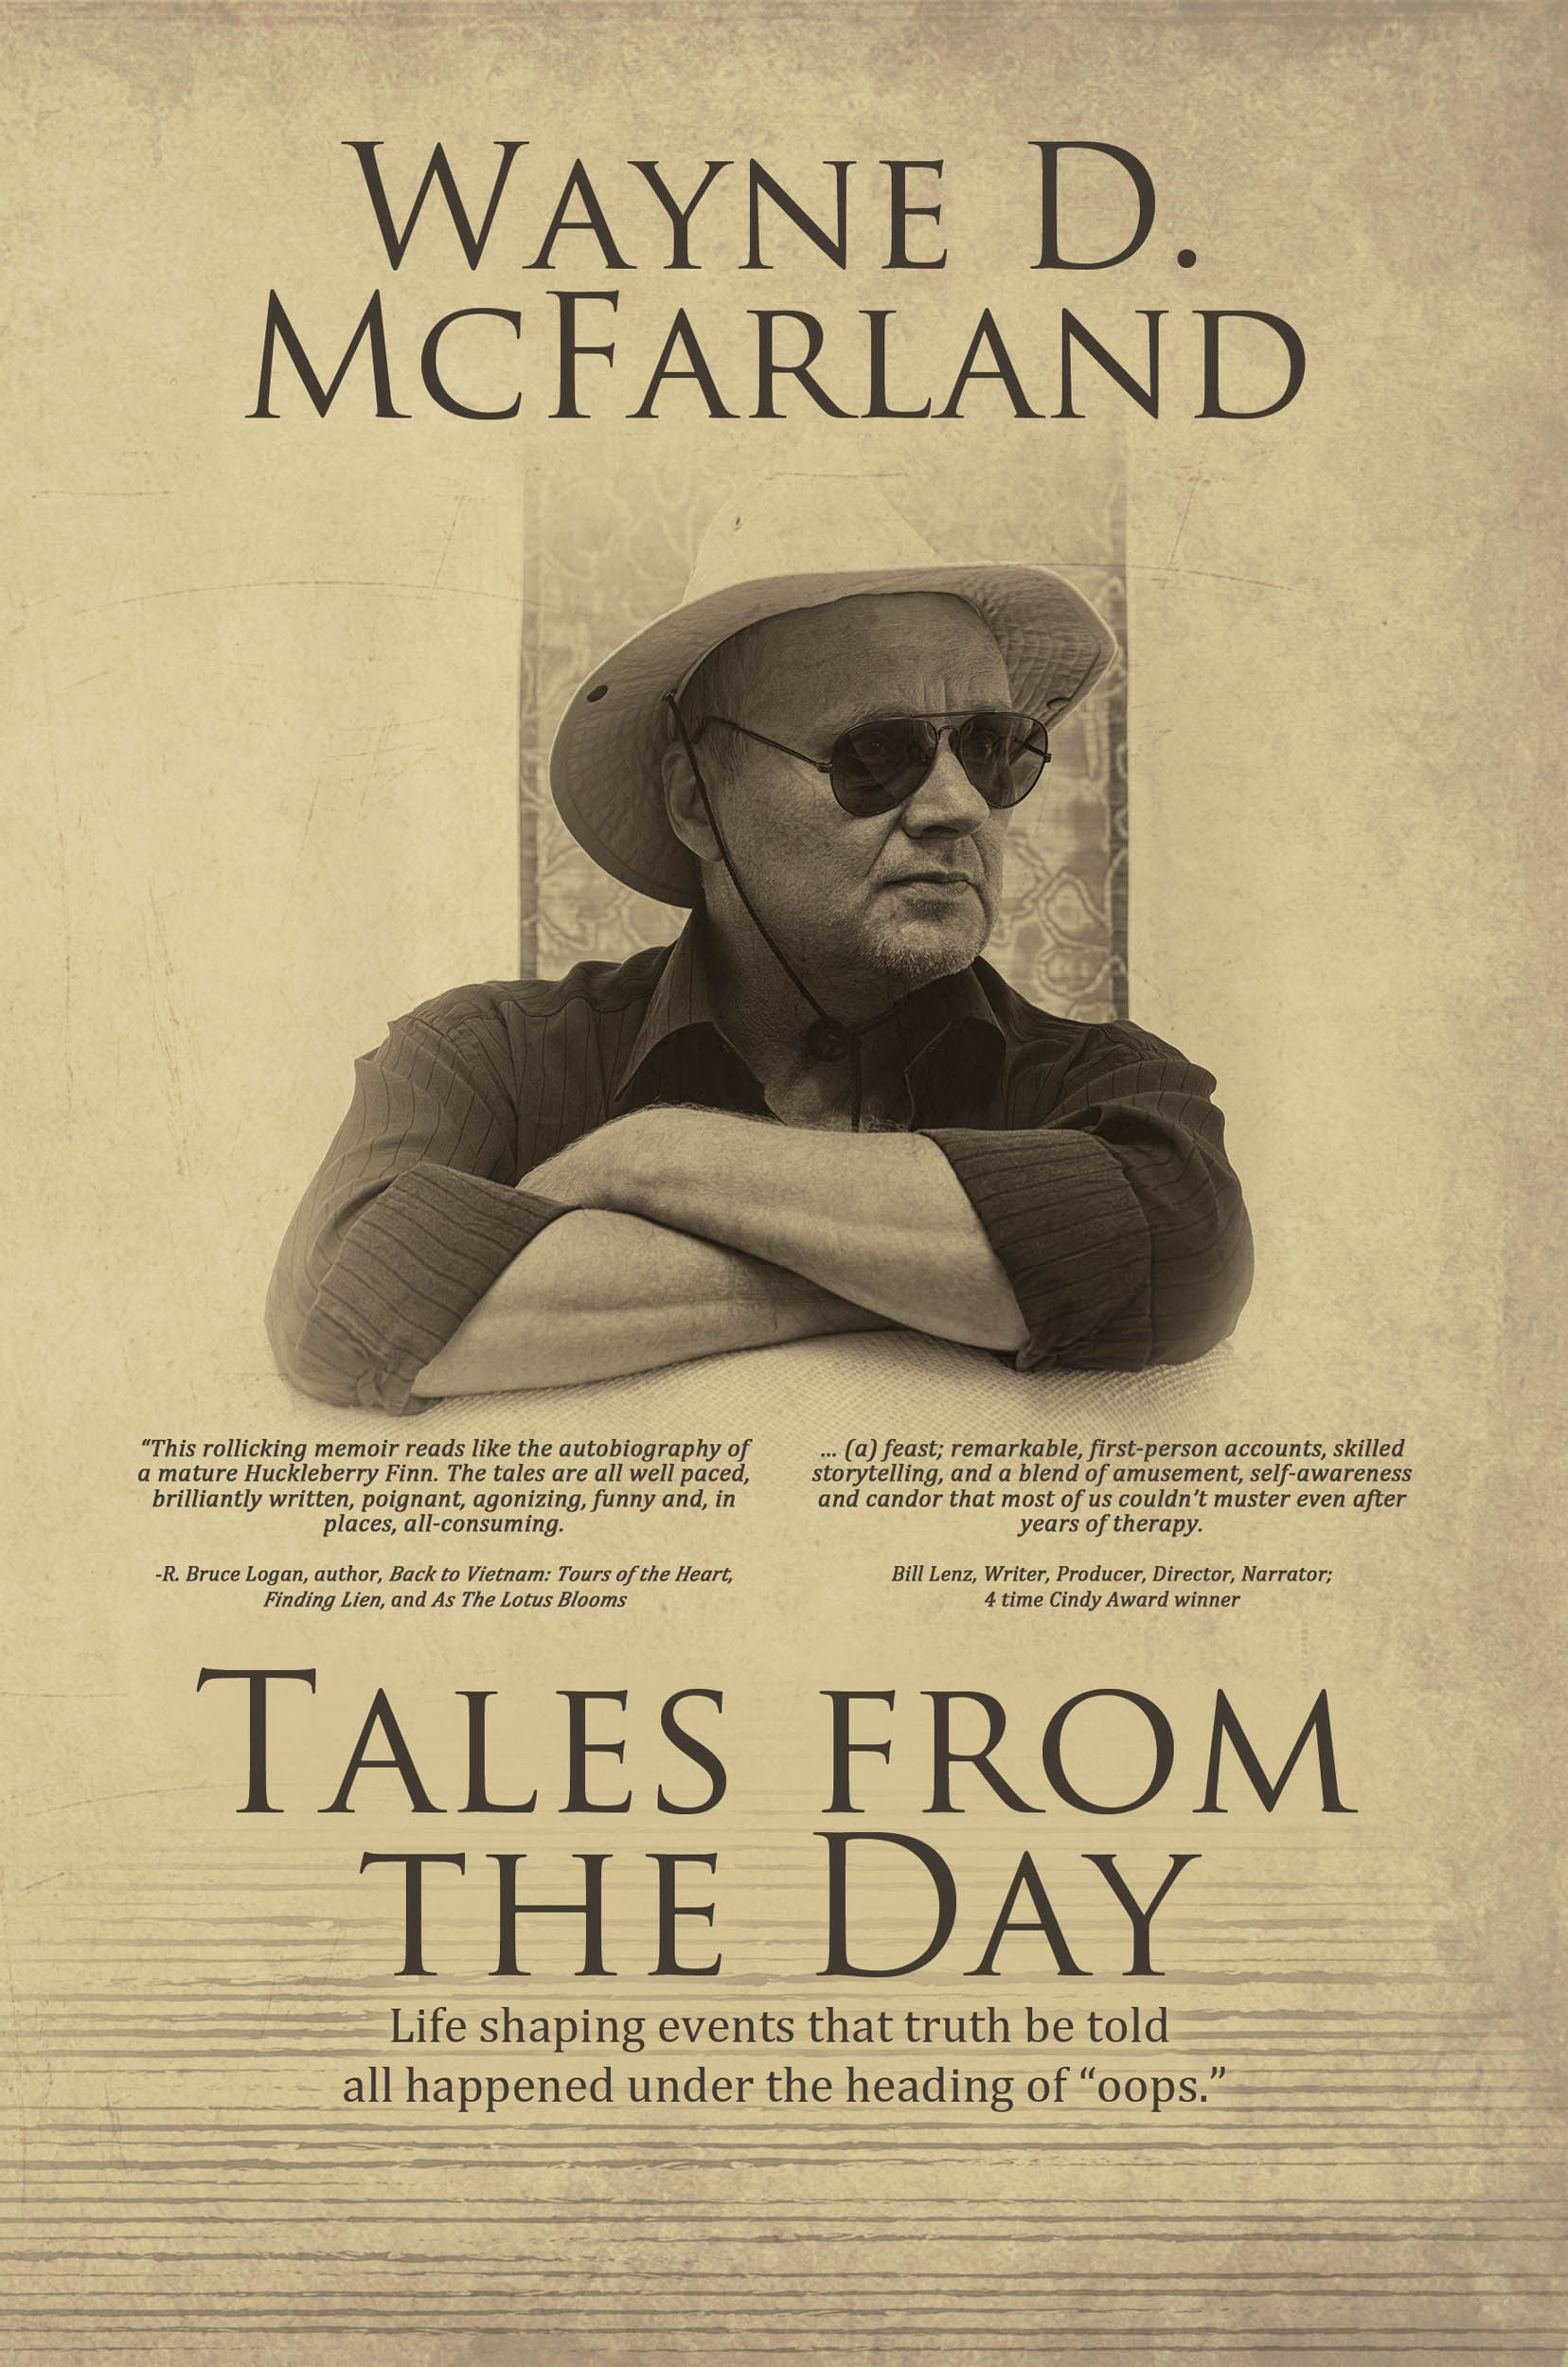 wayne d. mcfarland tales from the day